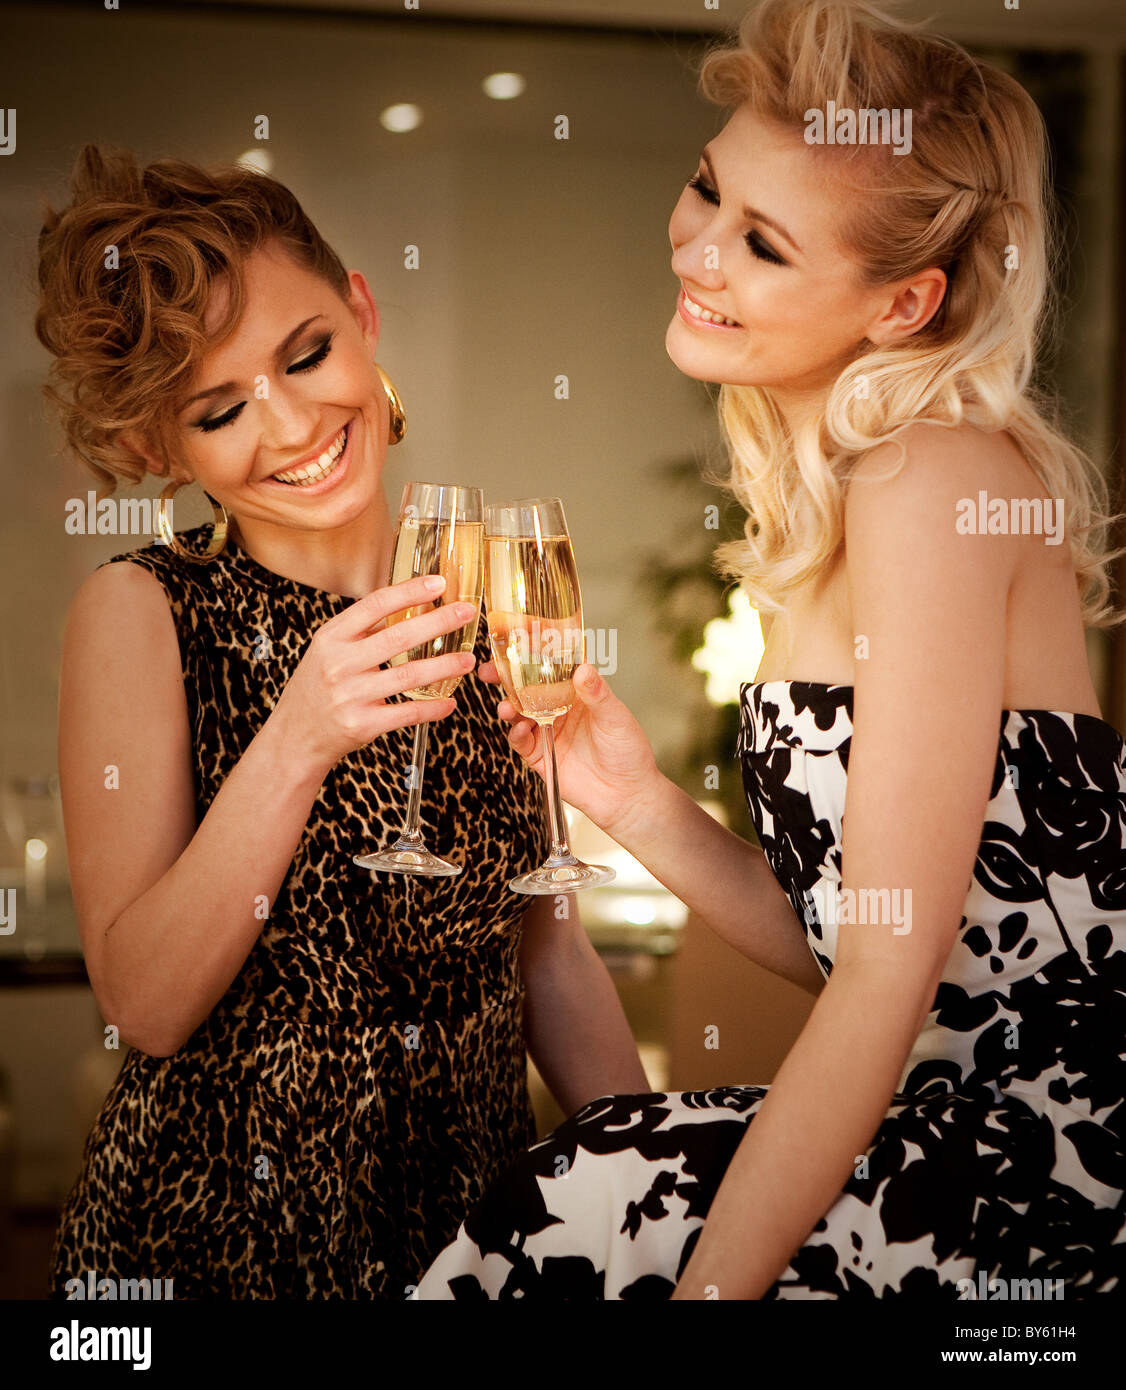 two women drink champagne - Stock Image